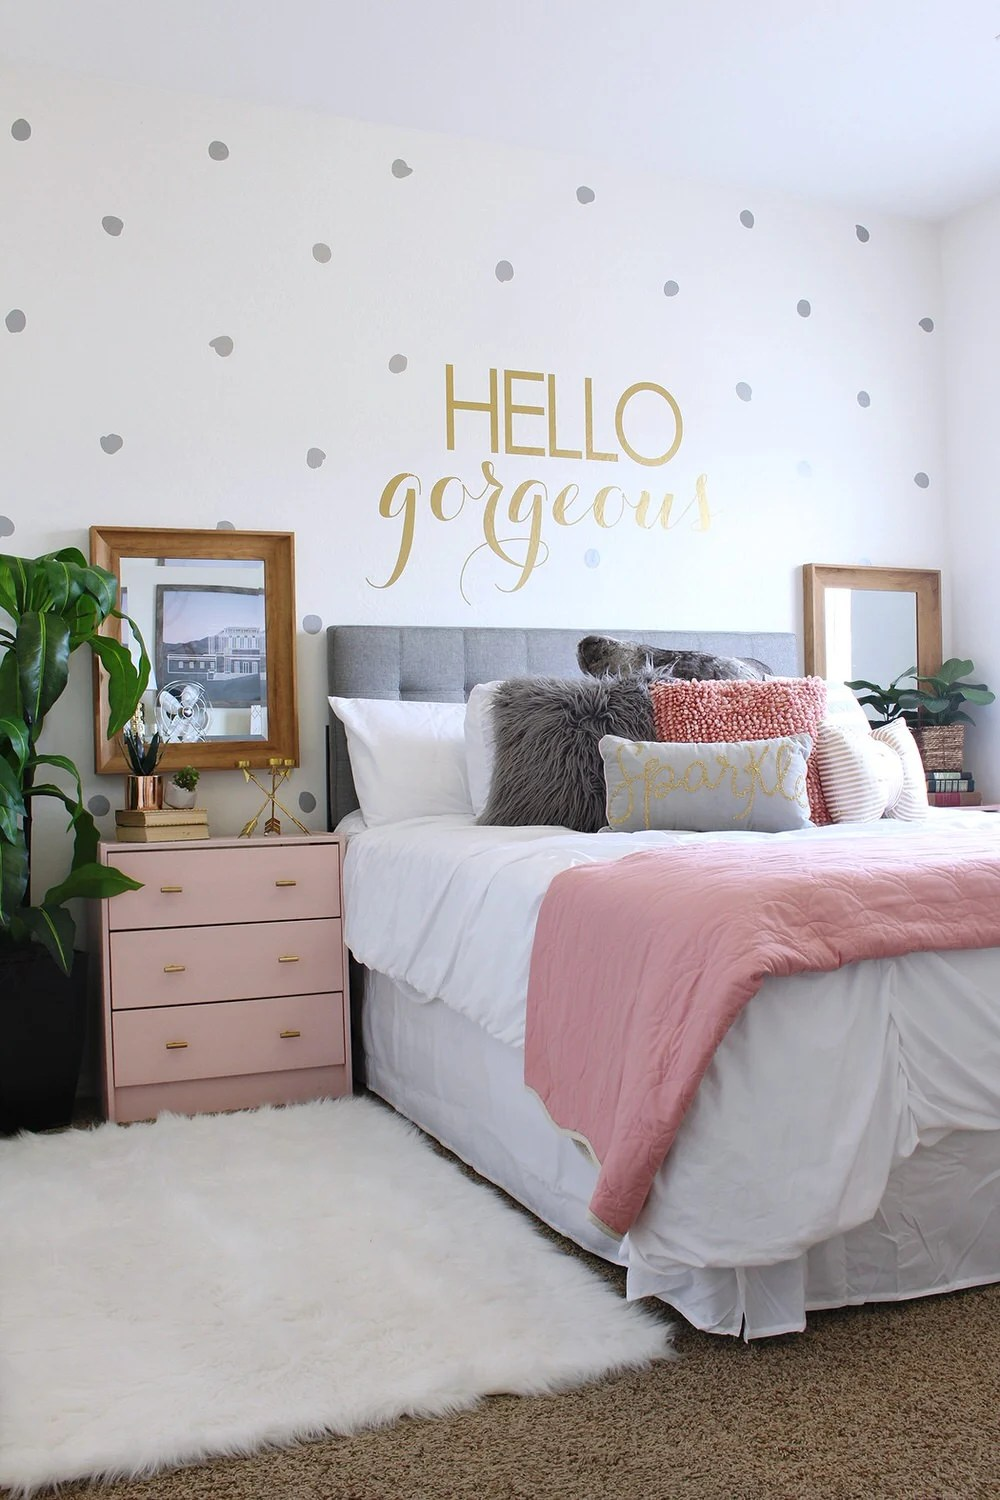 Teen Bedroom Ideas Teen Bedroom Decorating Tips Tricks Projects The Budget Decorator